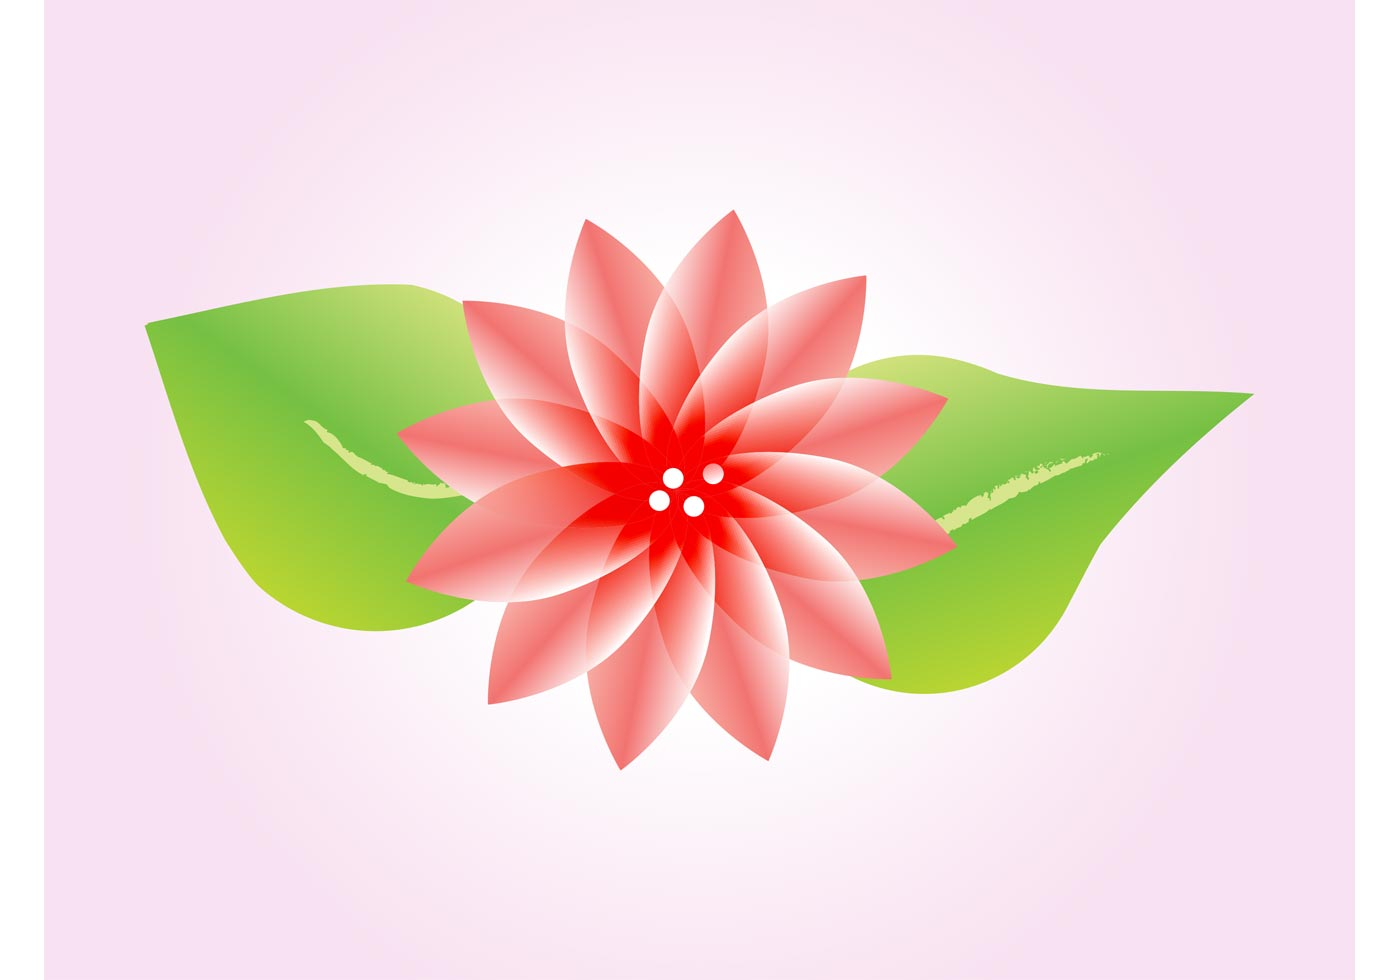 Wale feat miguel lotus flower bomb gallery flower decoration ideas wale lotus flower bomb mp3 download image collections flower wale feat miguel lotus flower bomb gallery izmirmasajfo